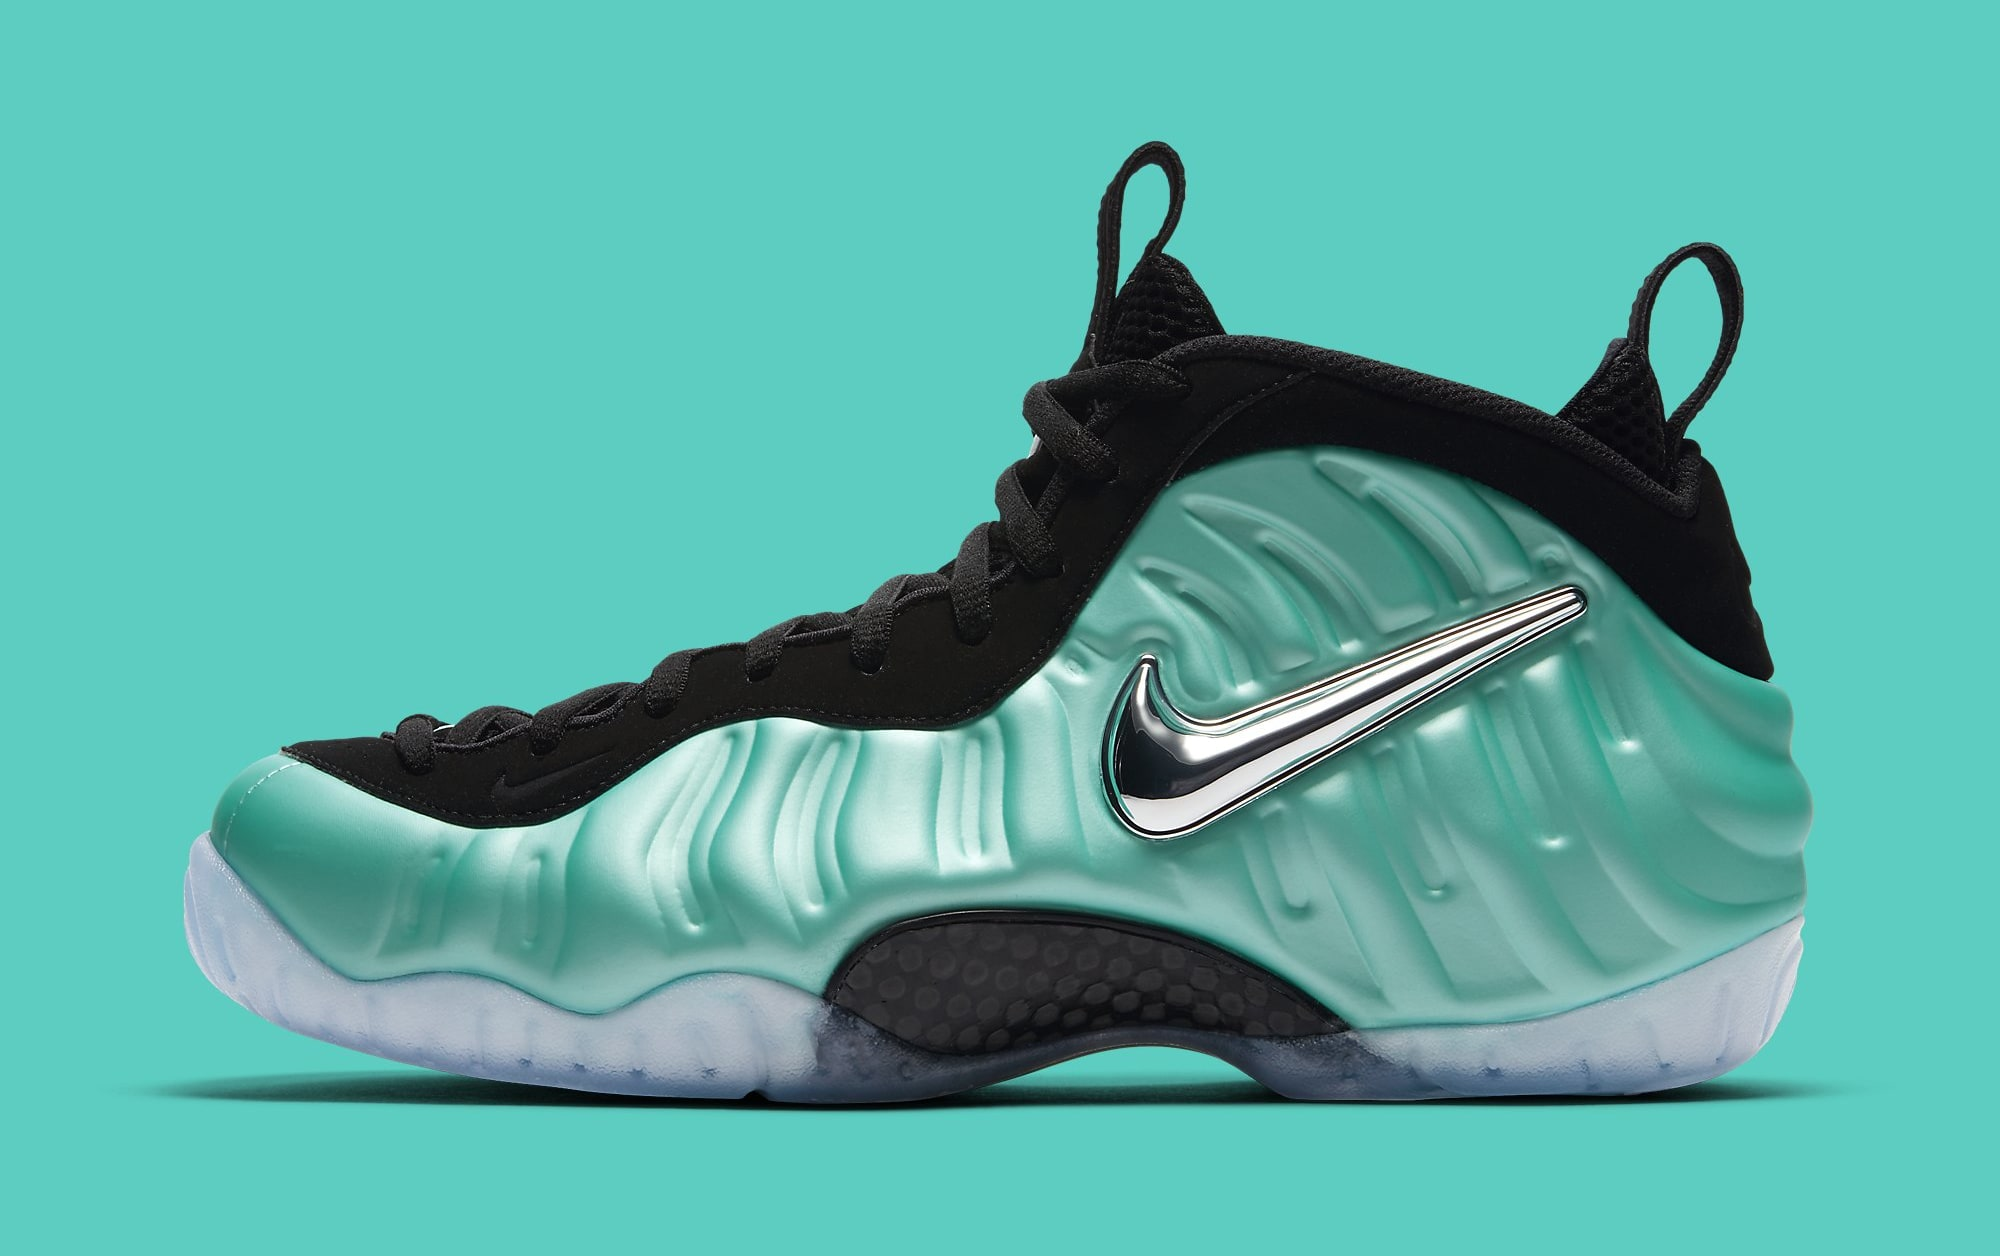 online store b8a04 dff24 Nike Air Foamposite Pro Island Green Releases this Friday ...